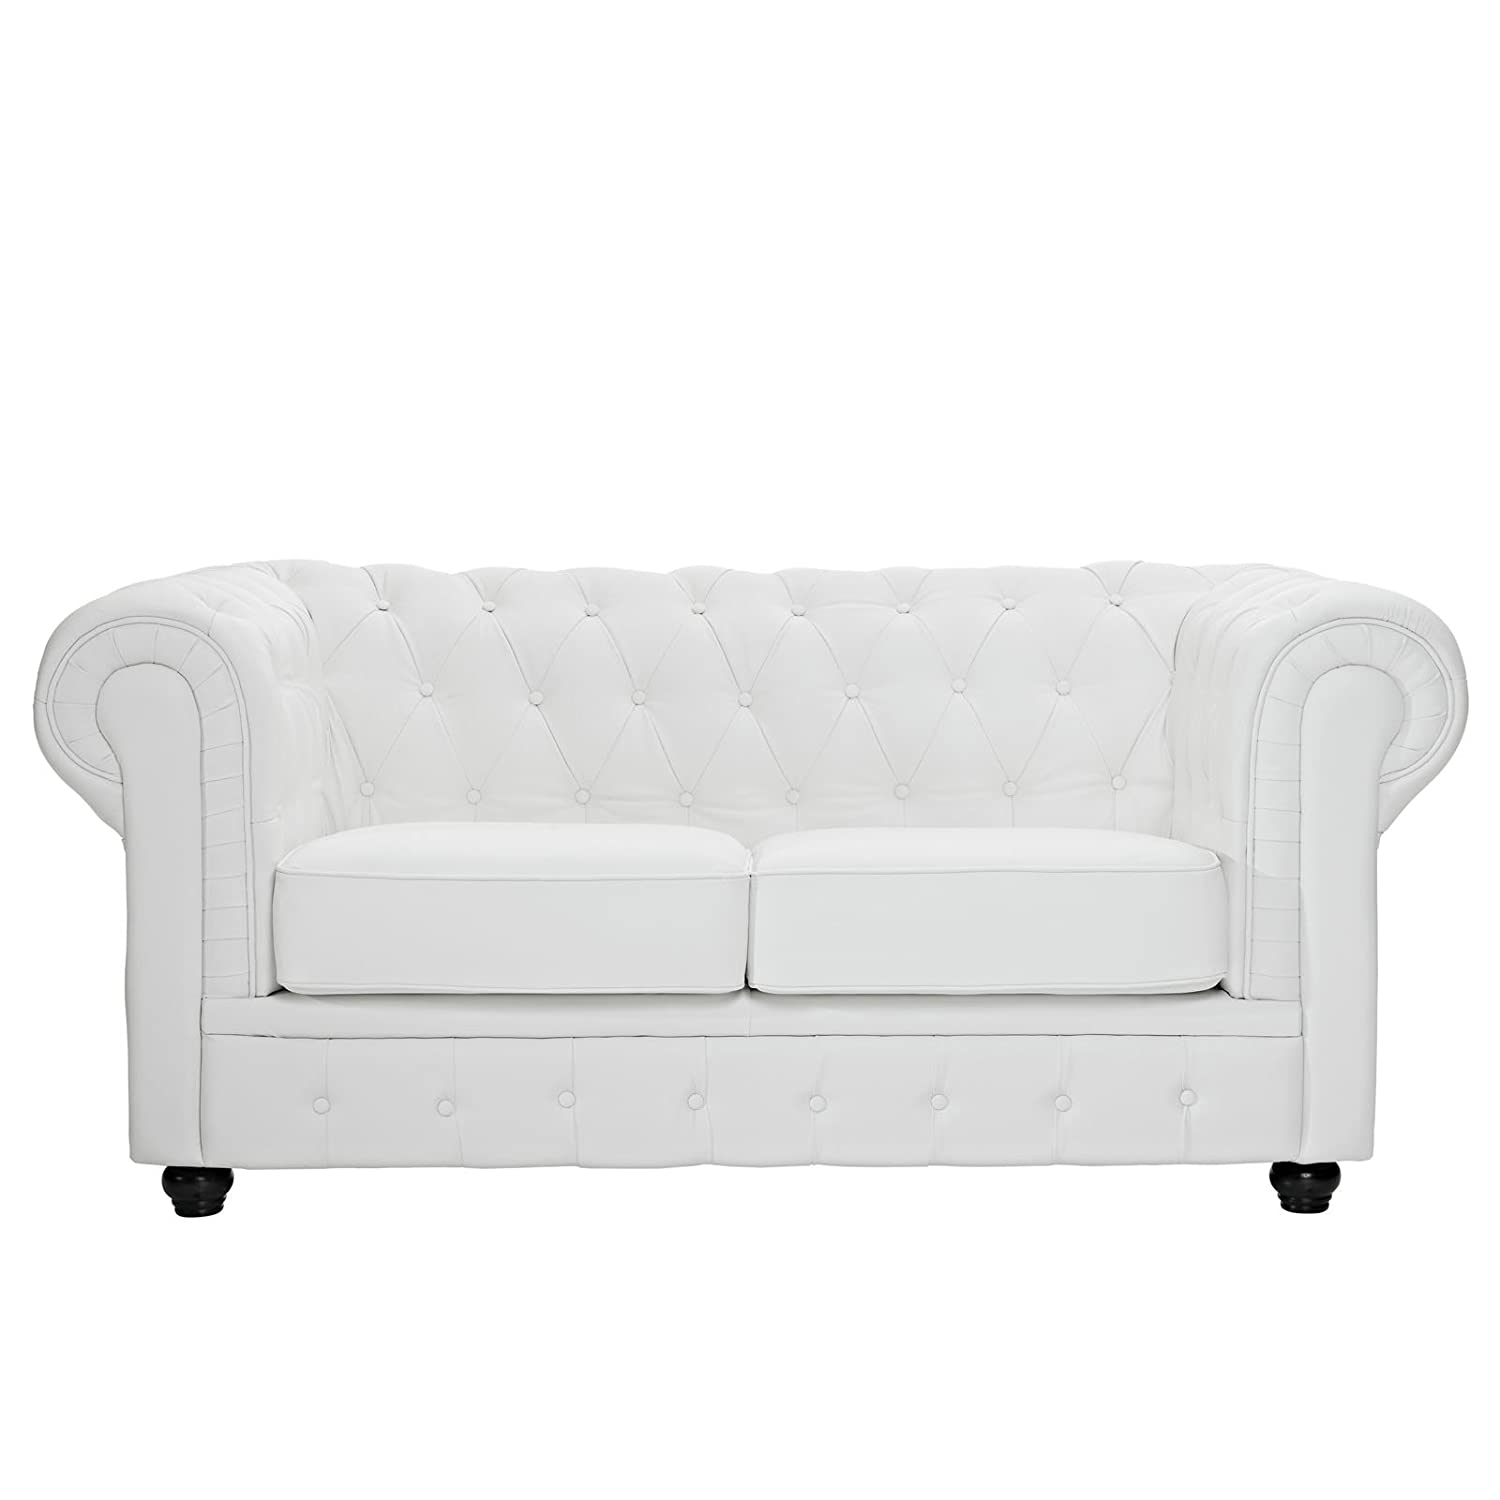 Amazon Modway Chesterfield Loveseat in White Leather and